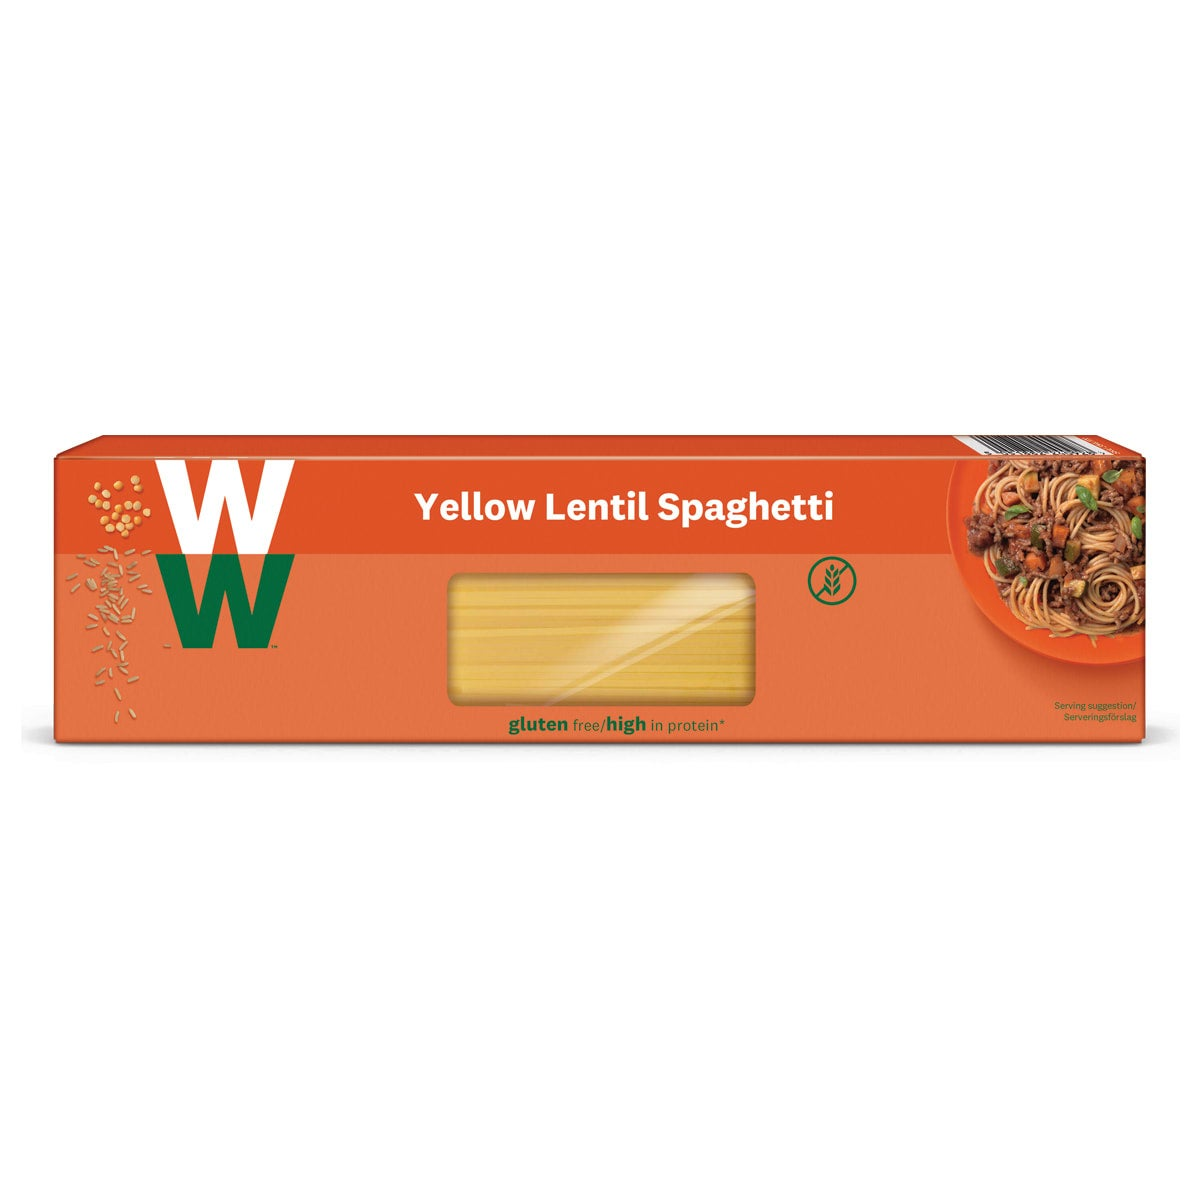 WW Yellow Lentil Spaghetti, made from yellow lentil and brown rice flour, alternative to regular spaghetti, gluten free, high in protein, suitable for vegans